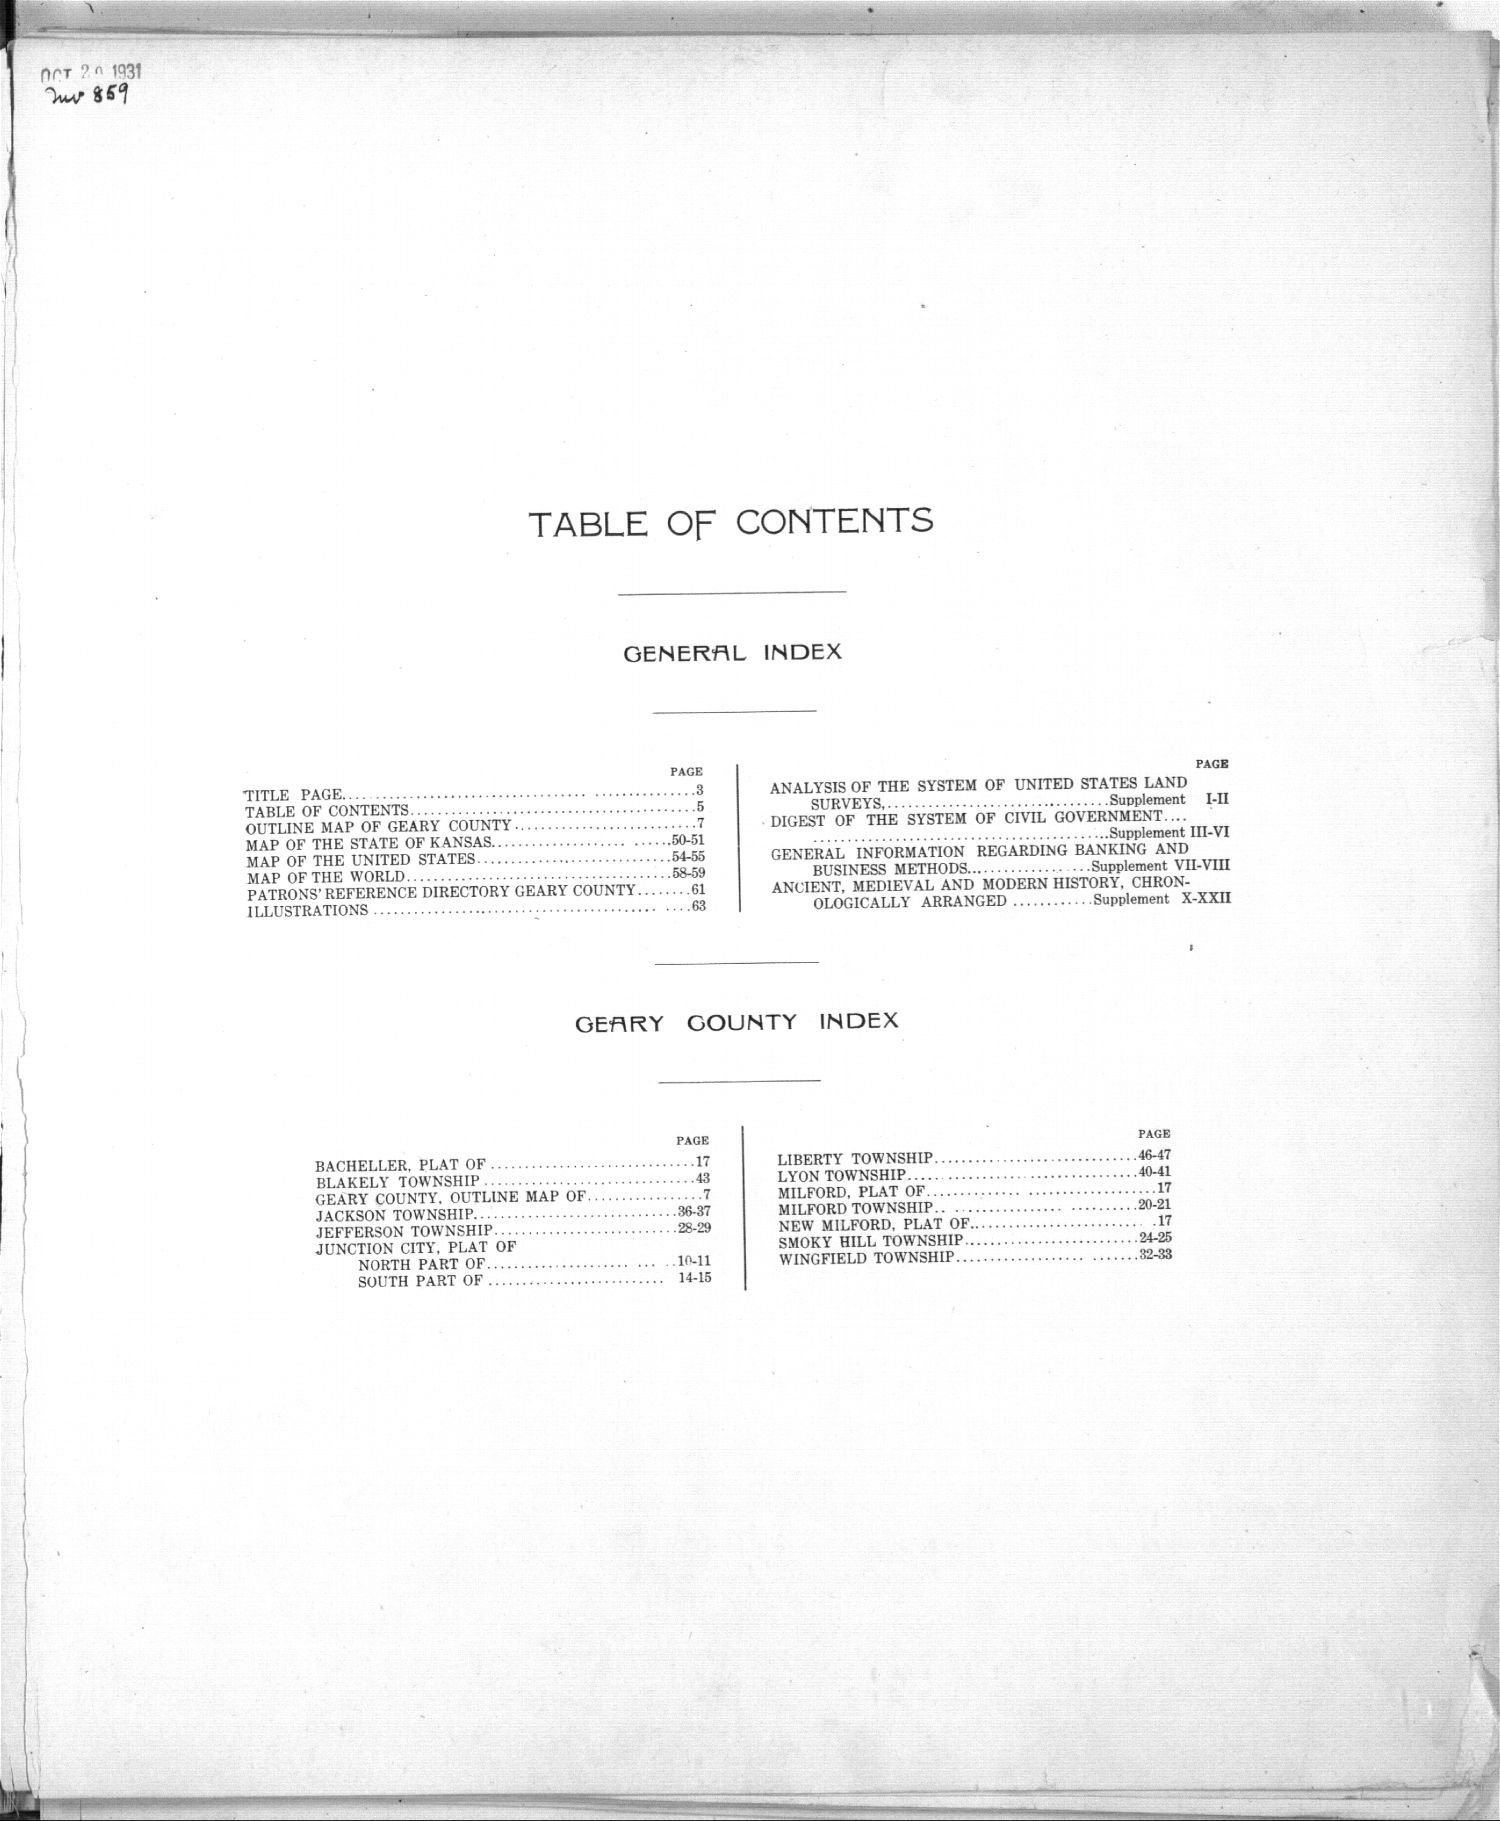 Standard atlas of Geary County, Kansas - Table of Contents